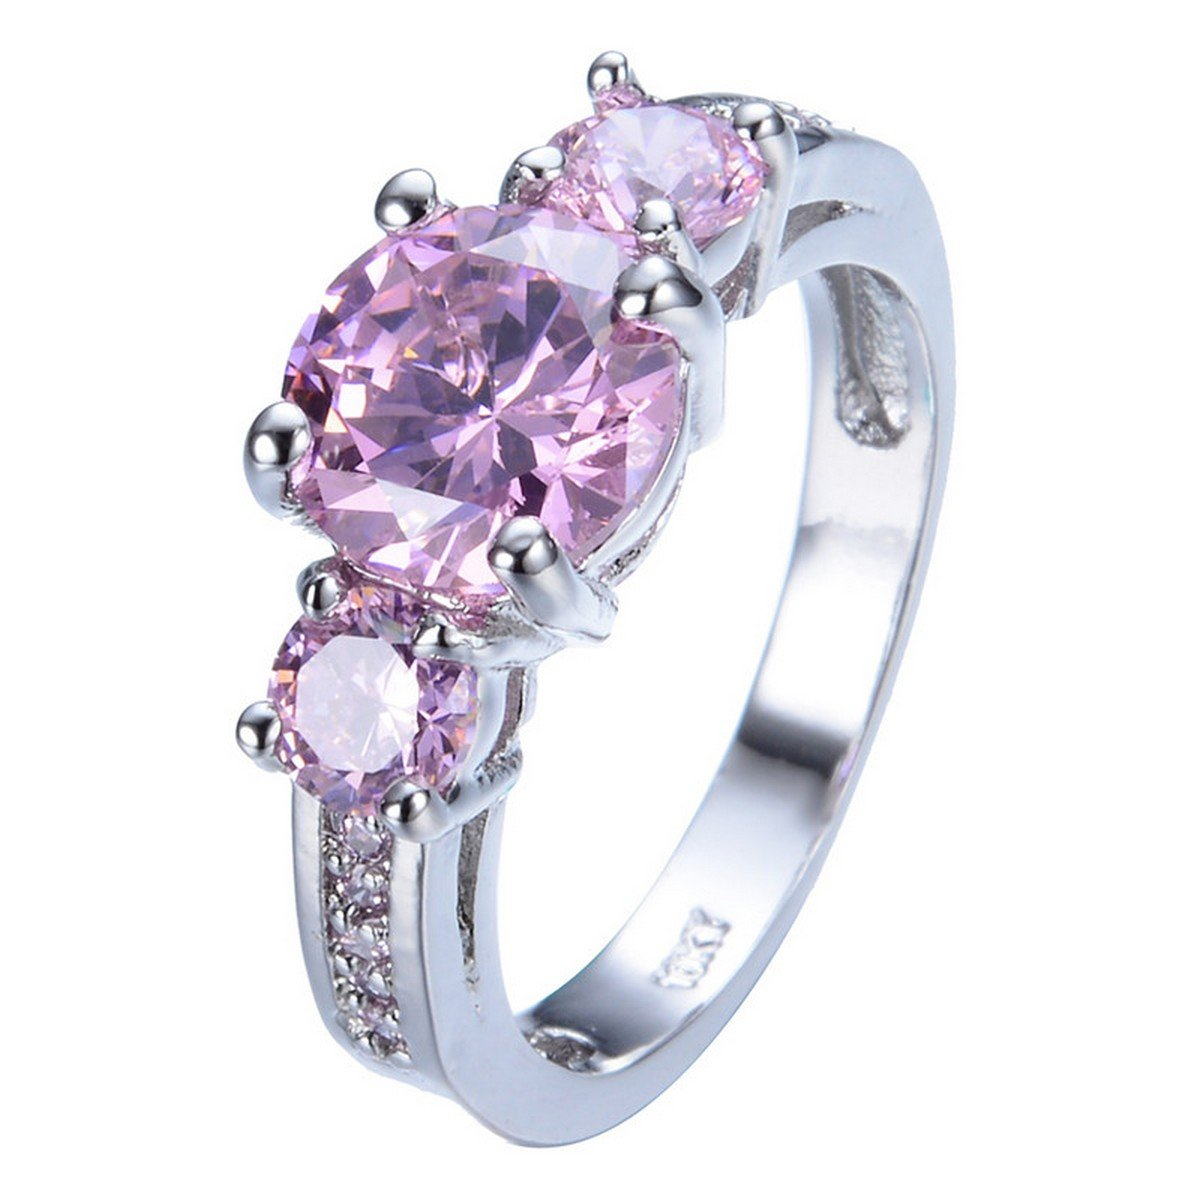 GDSTAR Cute Pink Sapphire Stone Ring Shining White Gold Filled Finger Rings Bague Femme GDSTAR_Rings_Fashion 1UGBZFW228